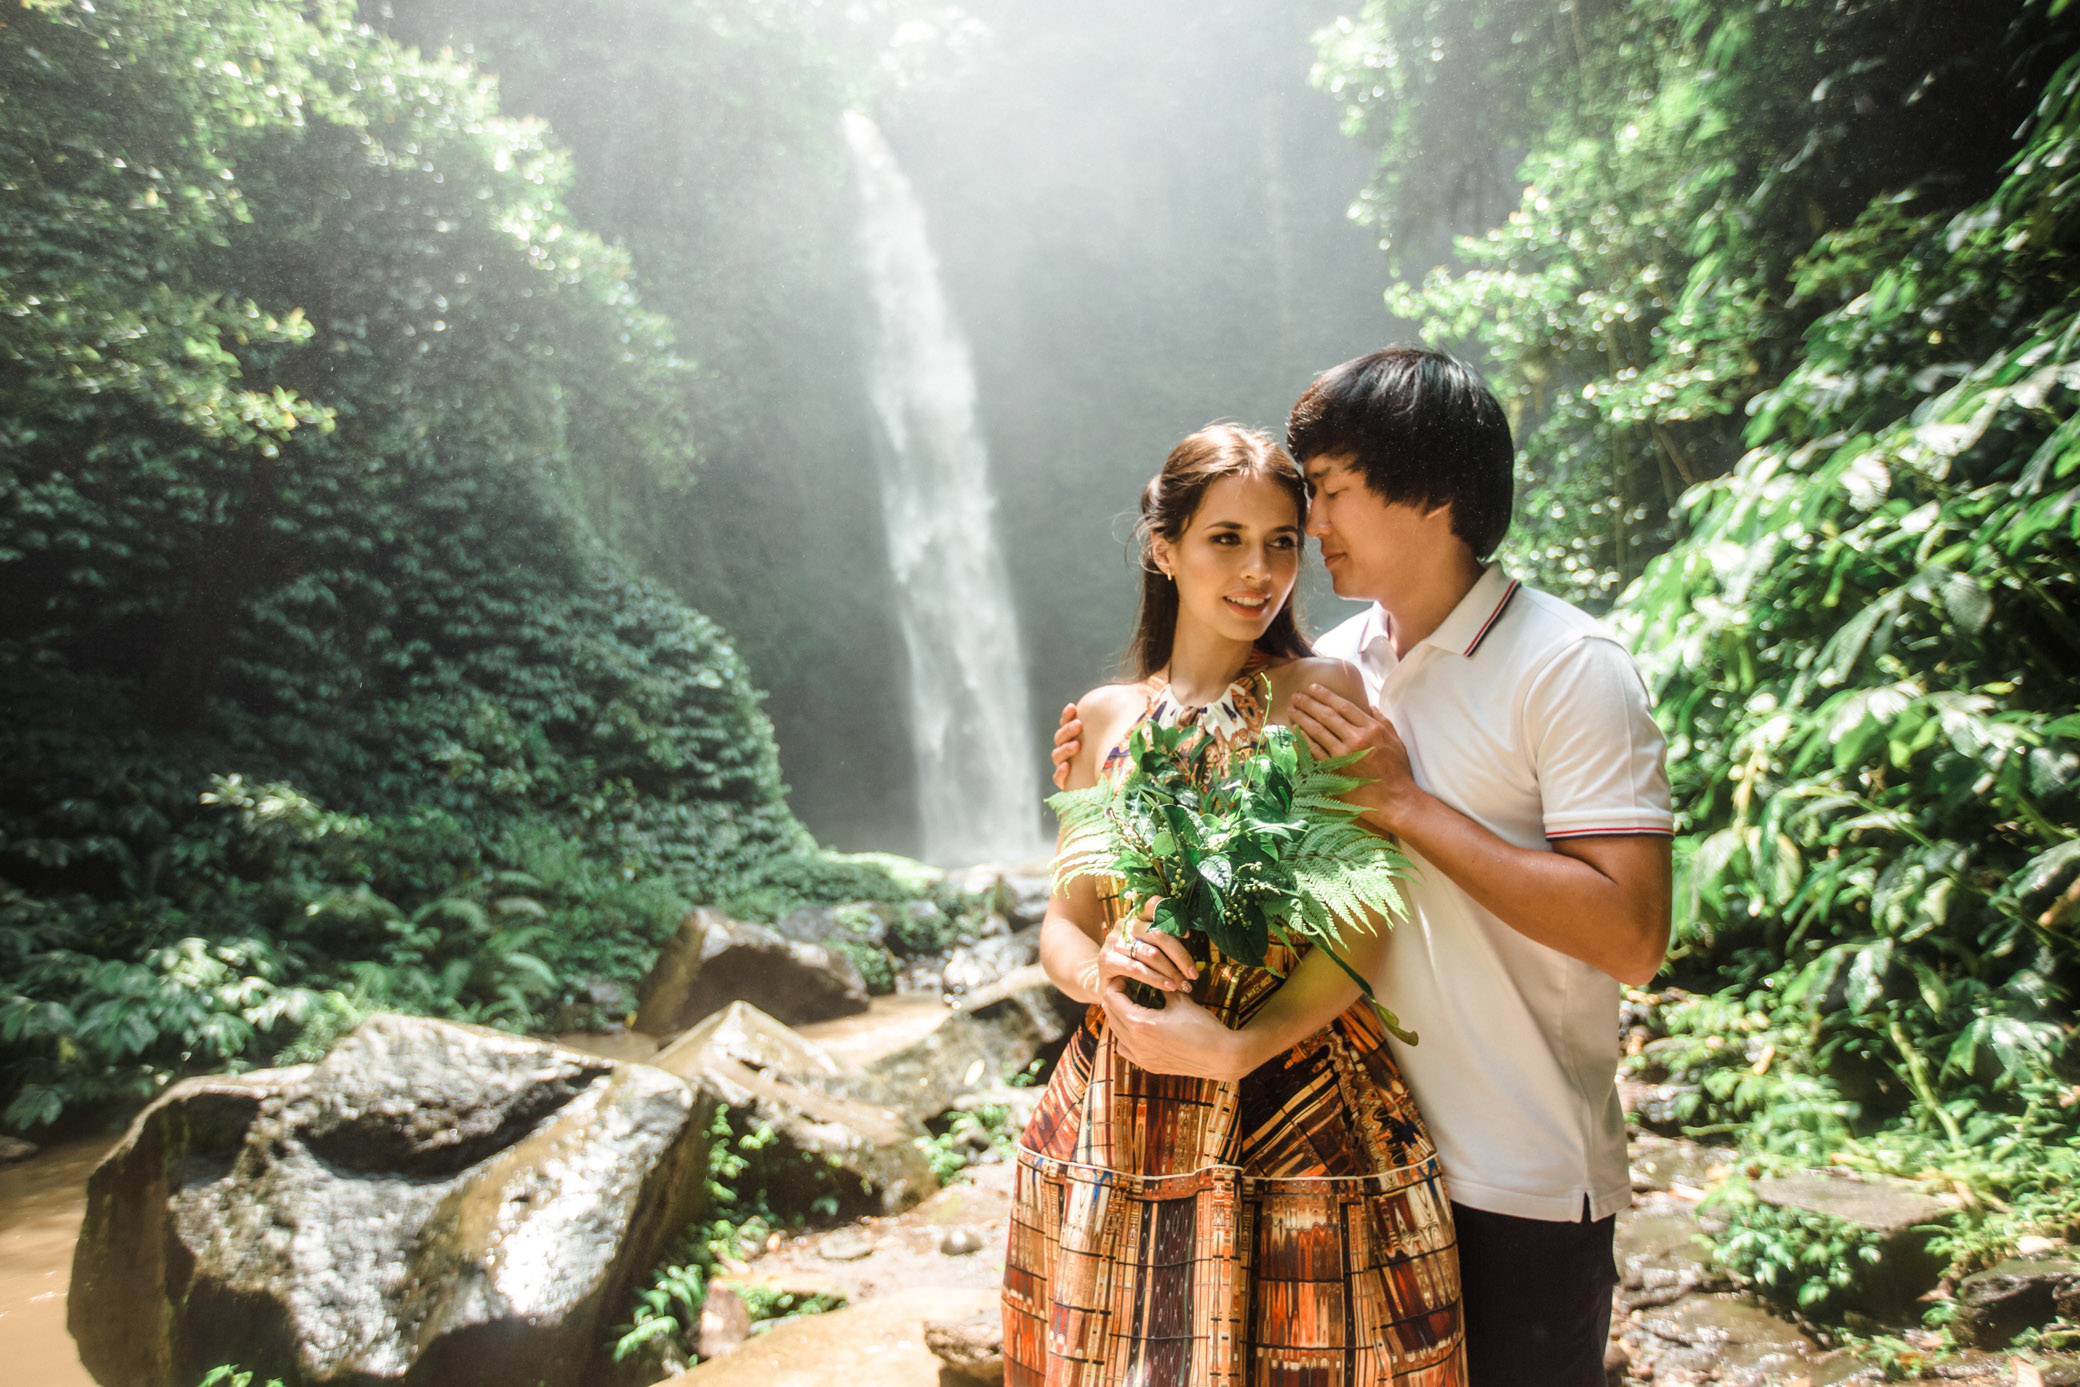 Romantic Photoshoot at the Waterfall